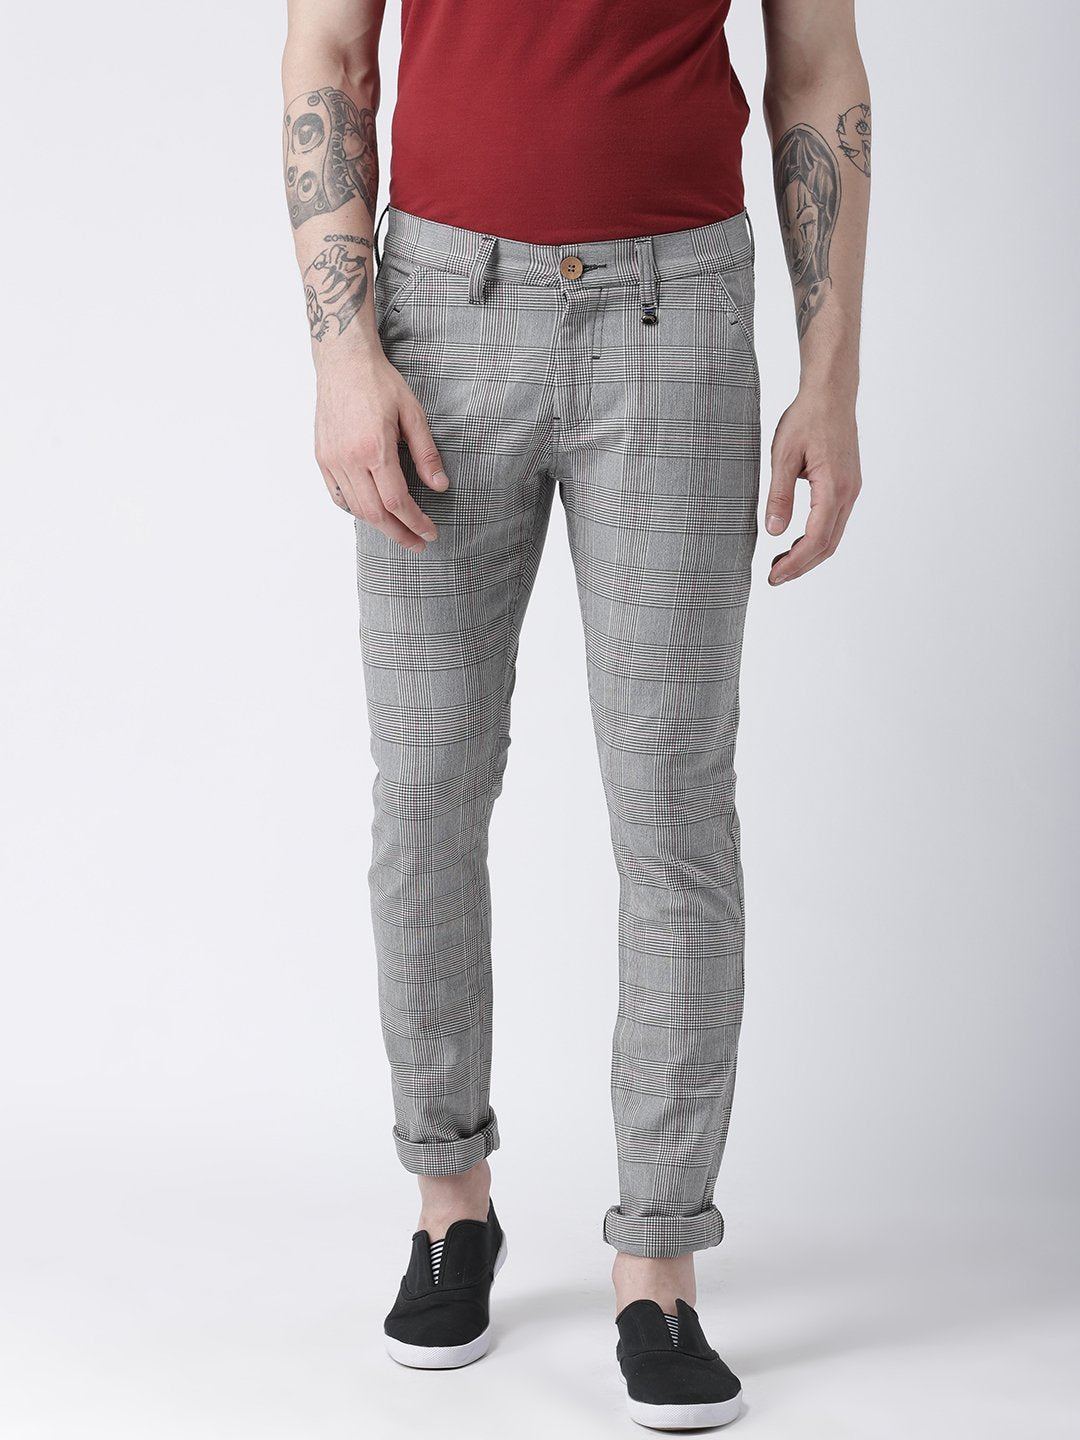 speical offer hot sales size 7 BEST SELLERS MEN TROUSERS - JUMP USA